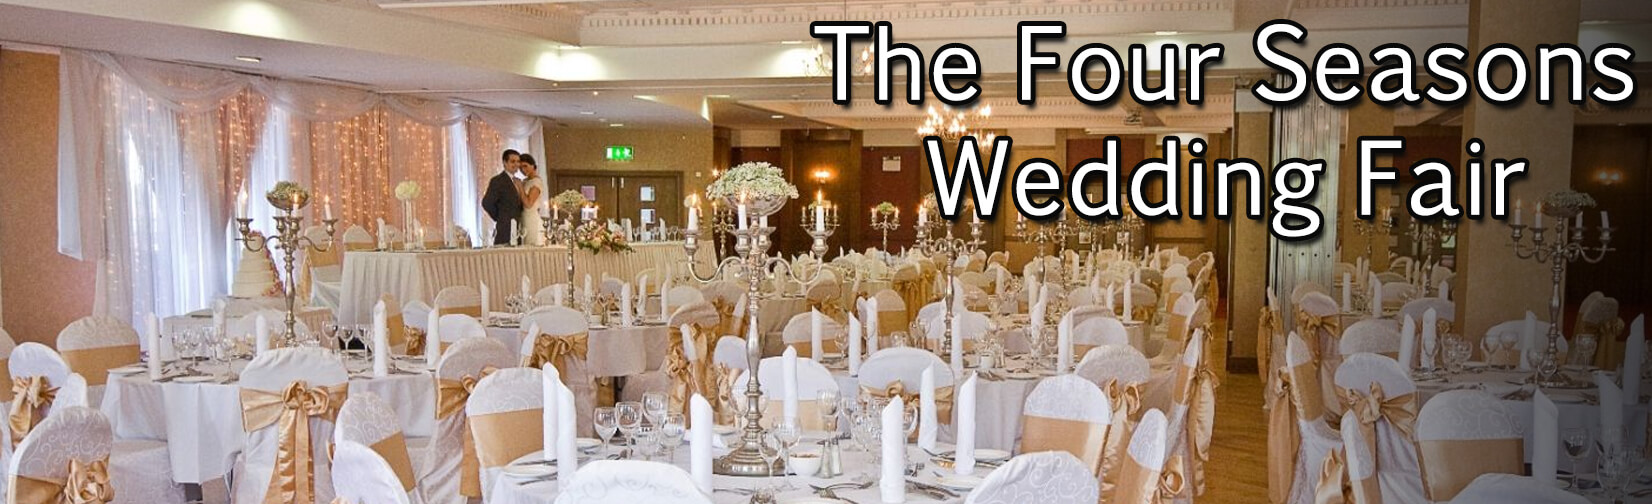 Wedding Fairs That Gerry Duffy Will Be Attending